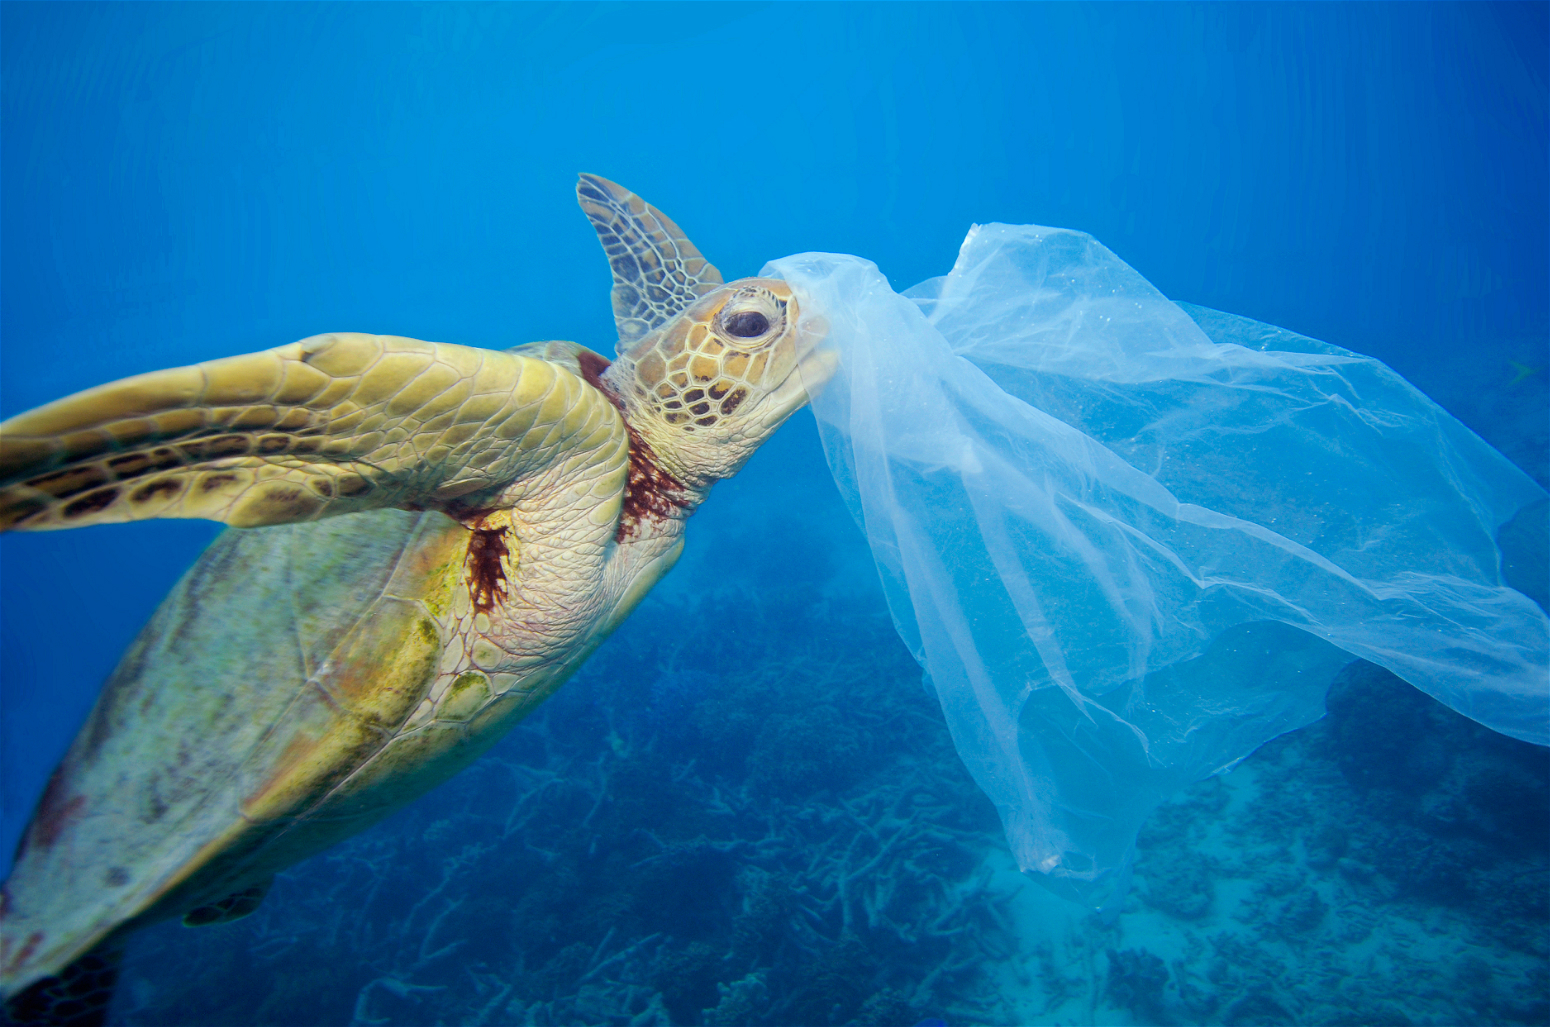 turtle caught in plastic bag